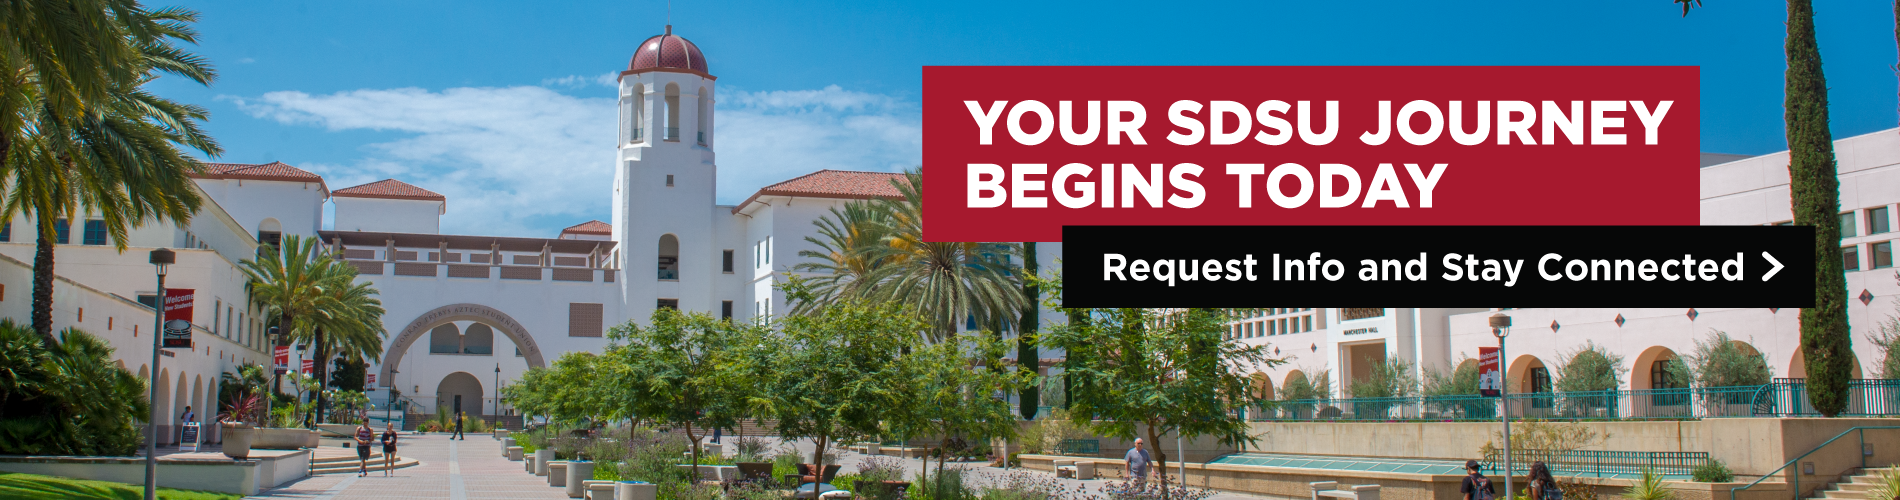 Your SDSU Journey Begins Today. Request Info and Stay Connected.